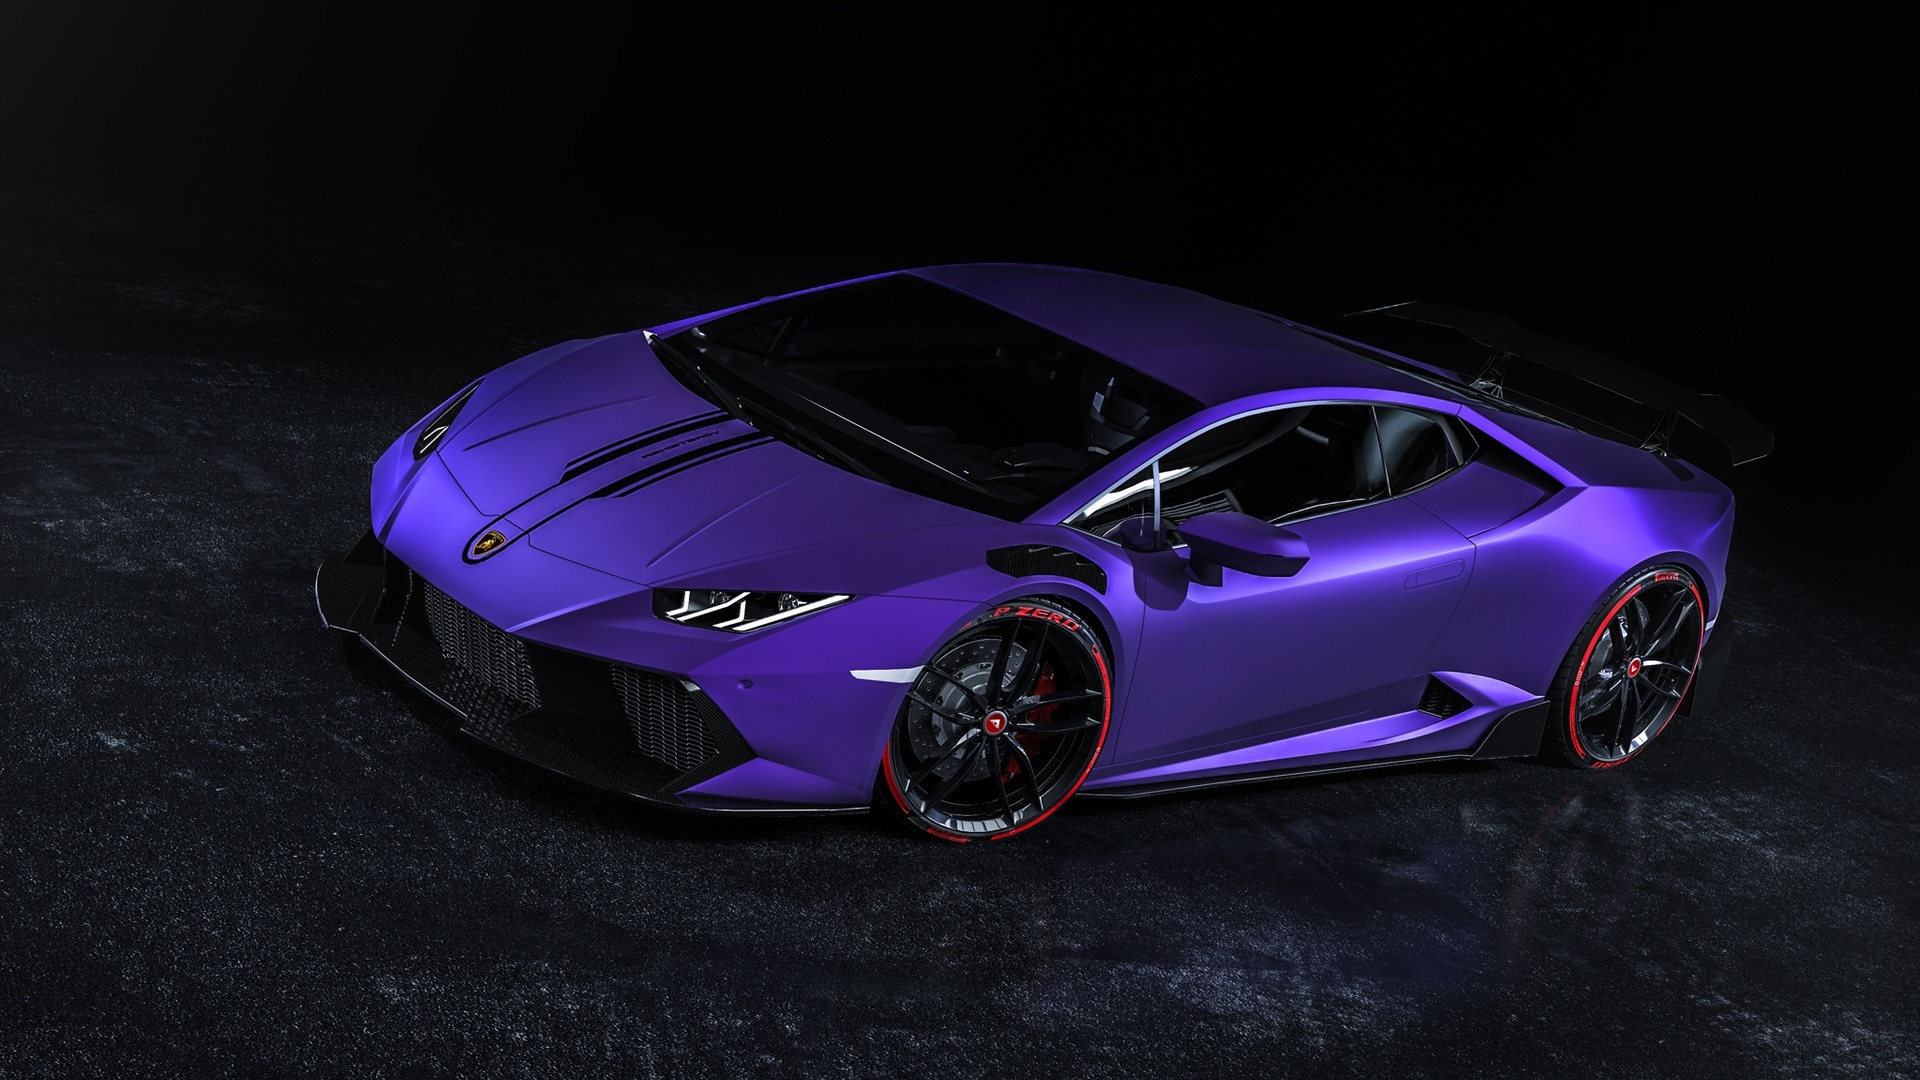 Wallpaper Of Car Lamborghini Huracan Purple Sportcar Background